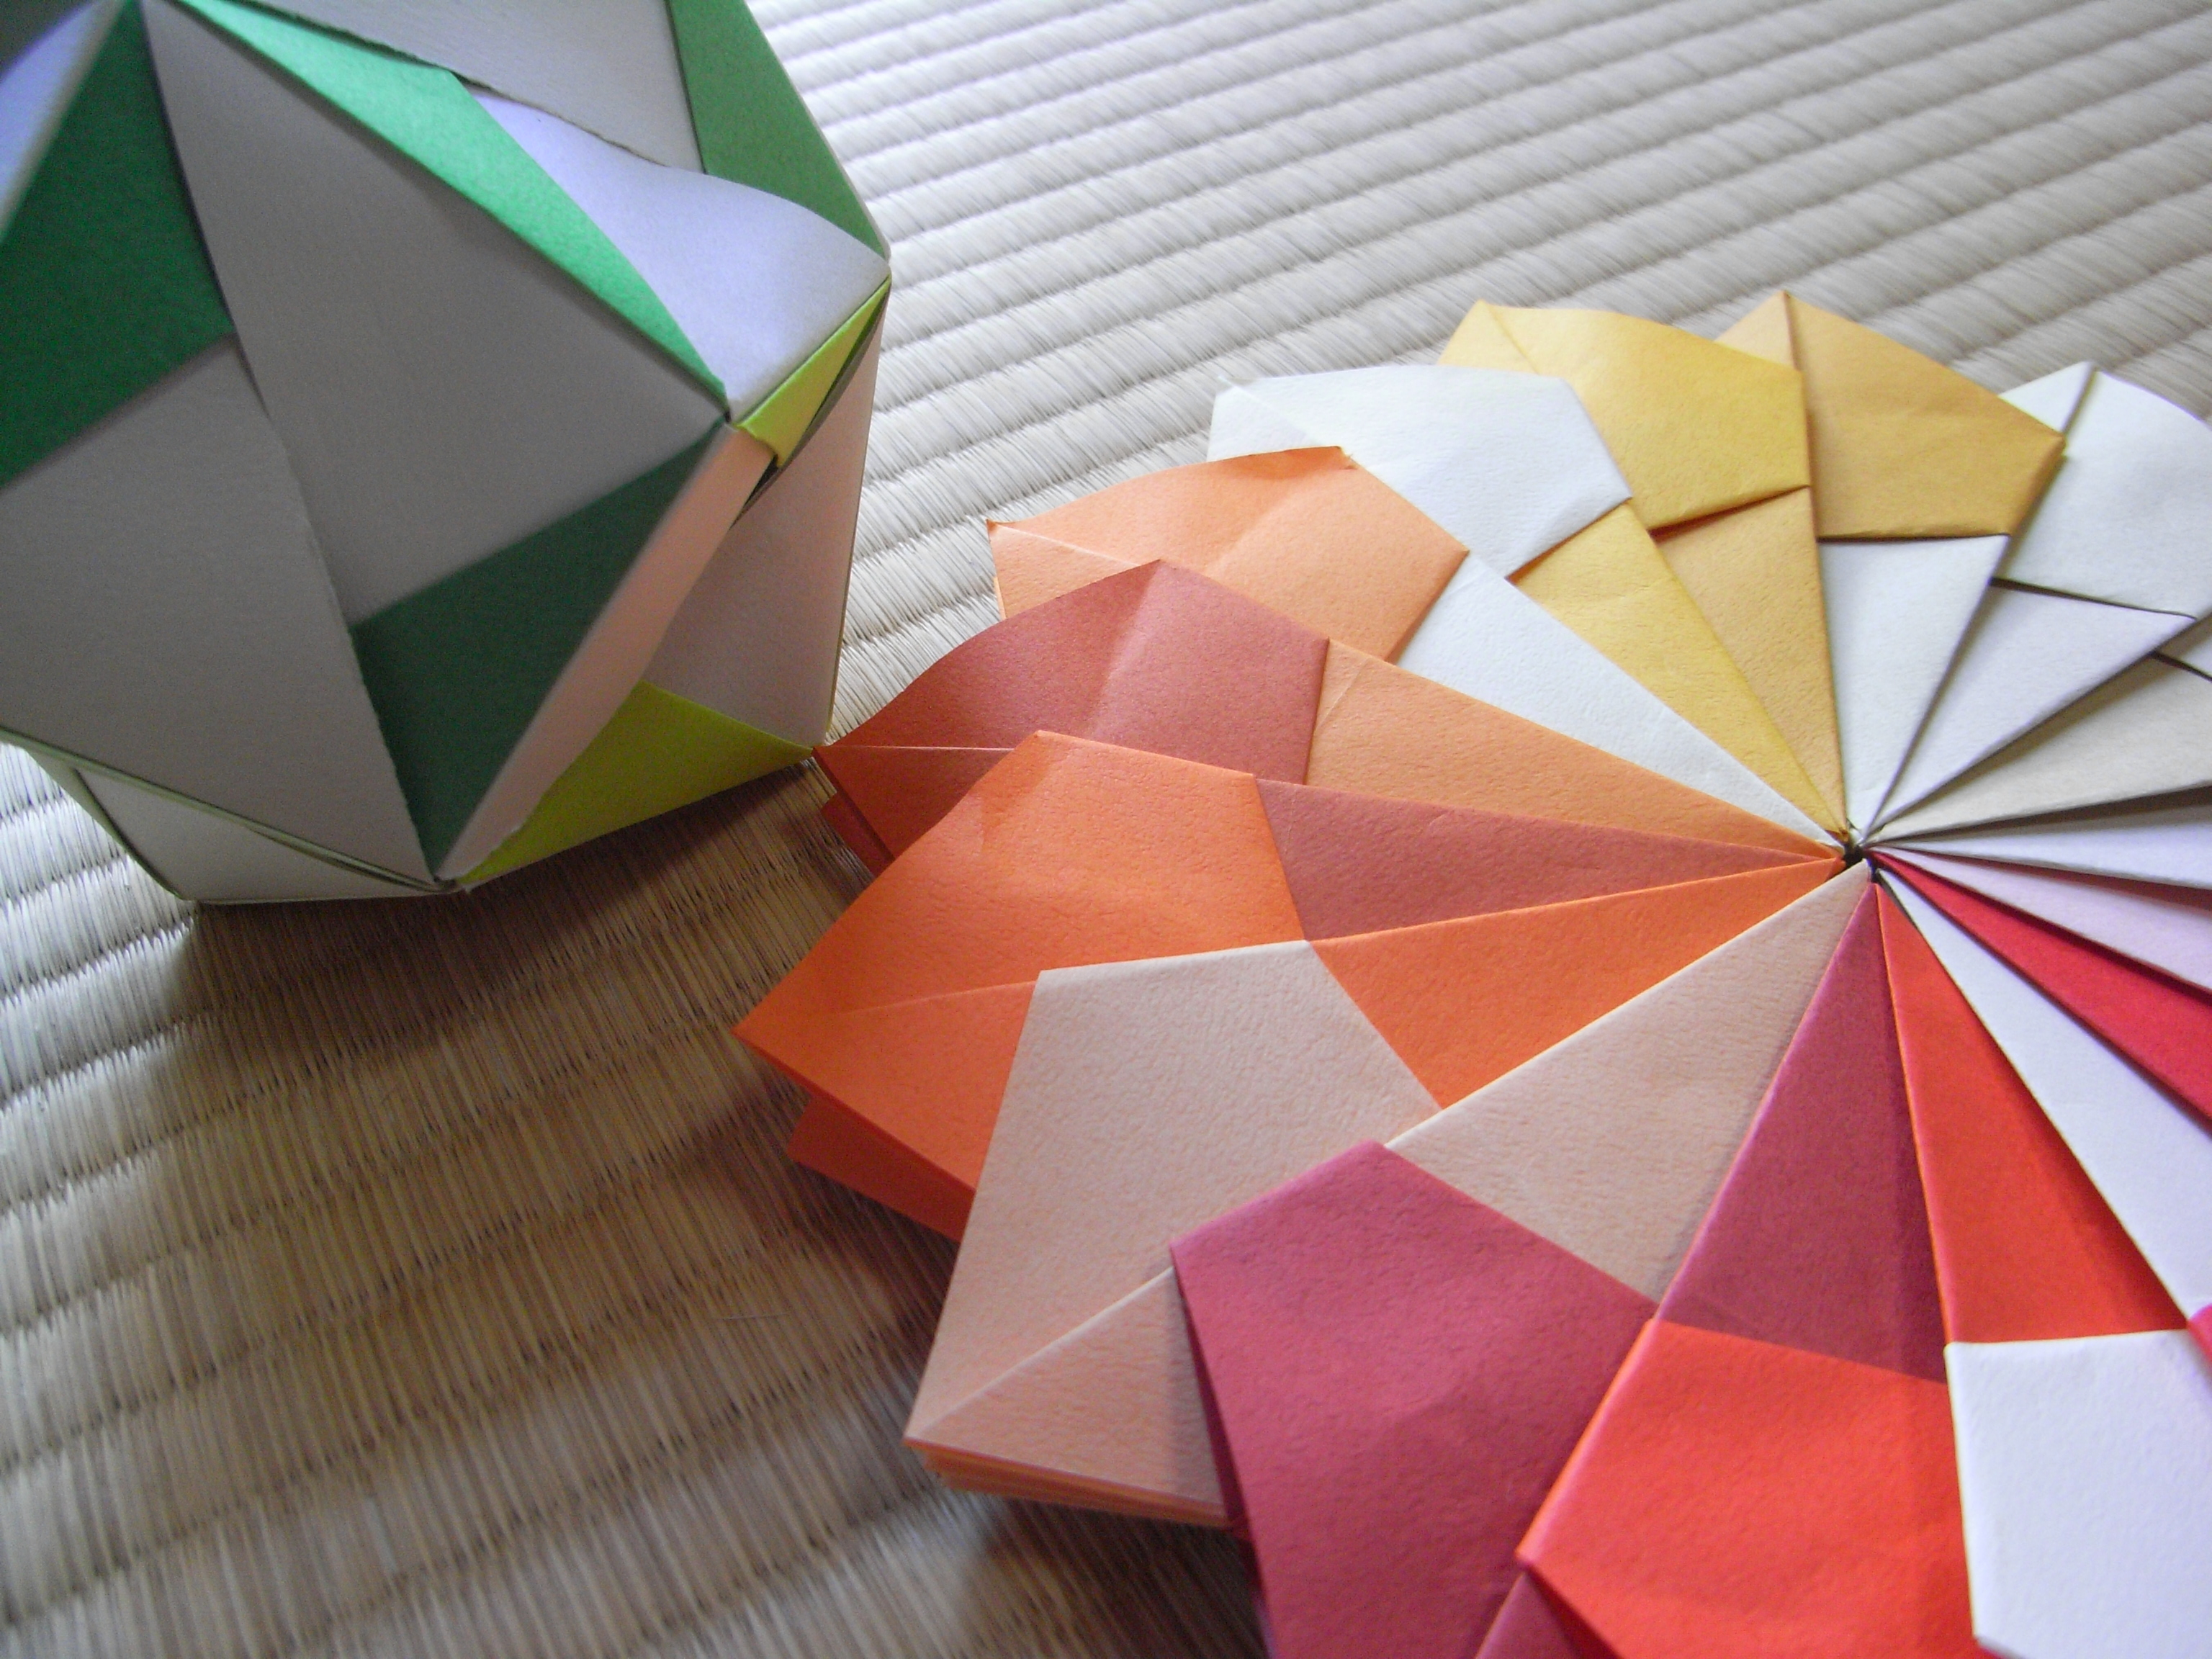 Description Image-2D and 3D modulor Origami.jpg